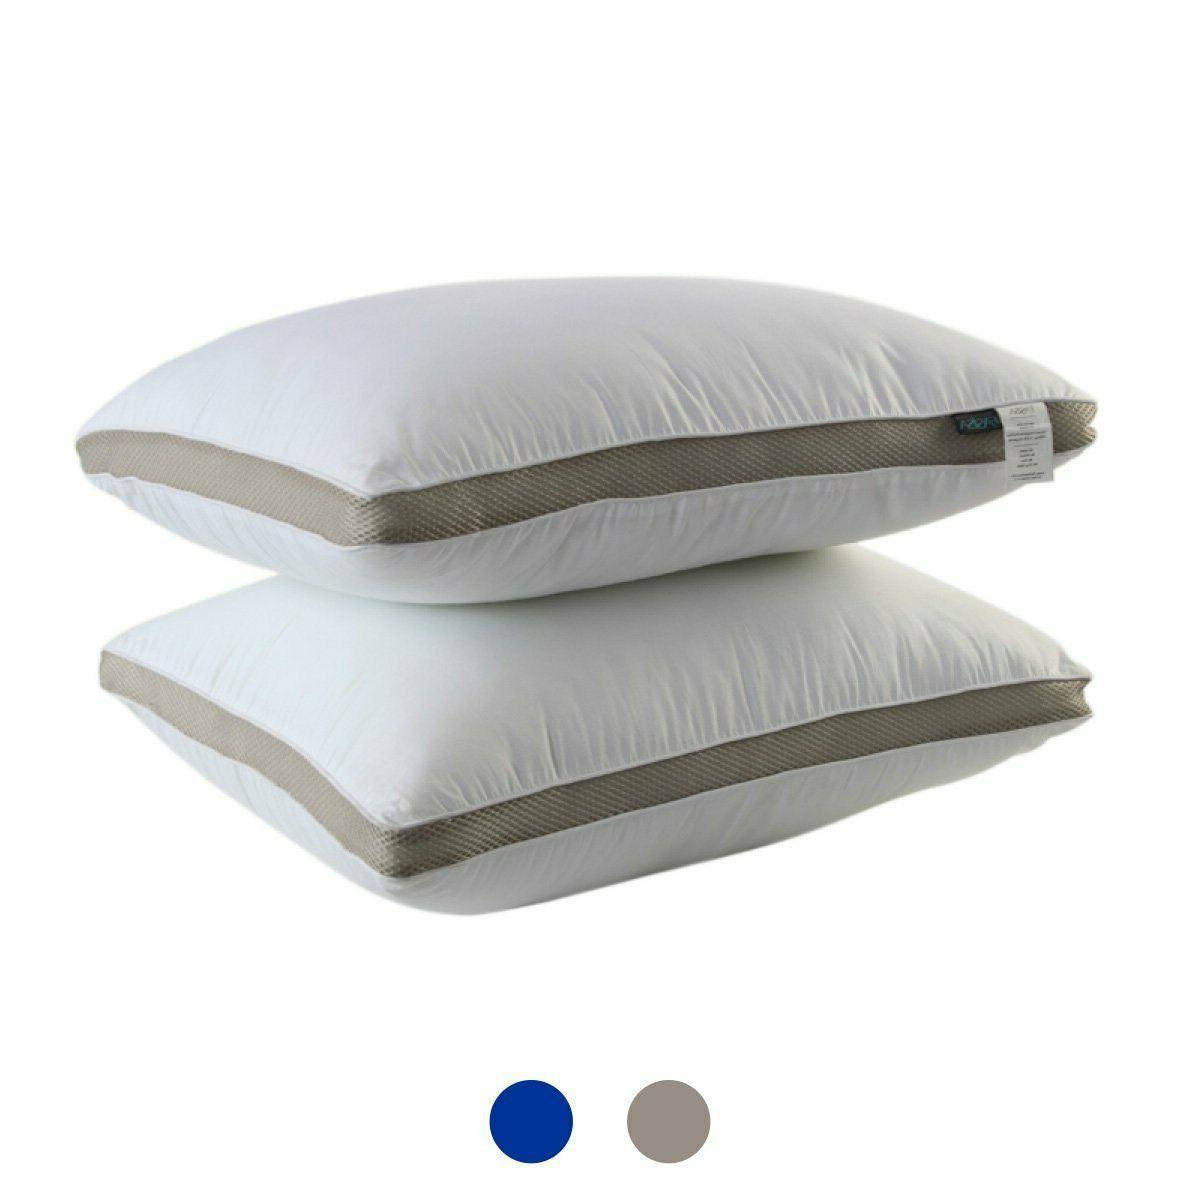 2pack gusseted pillows neck support side back